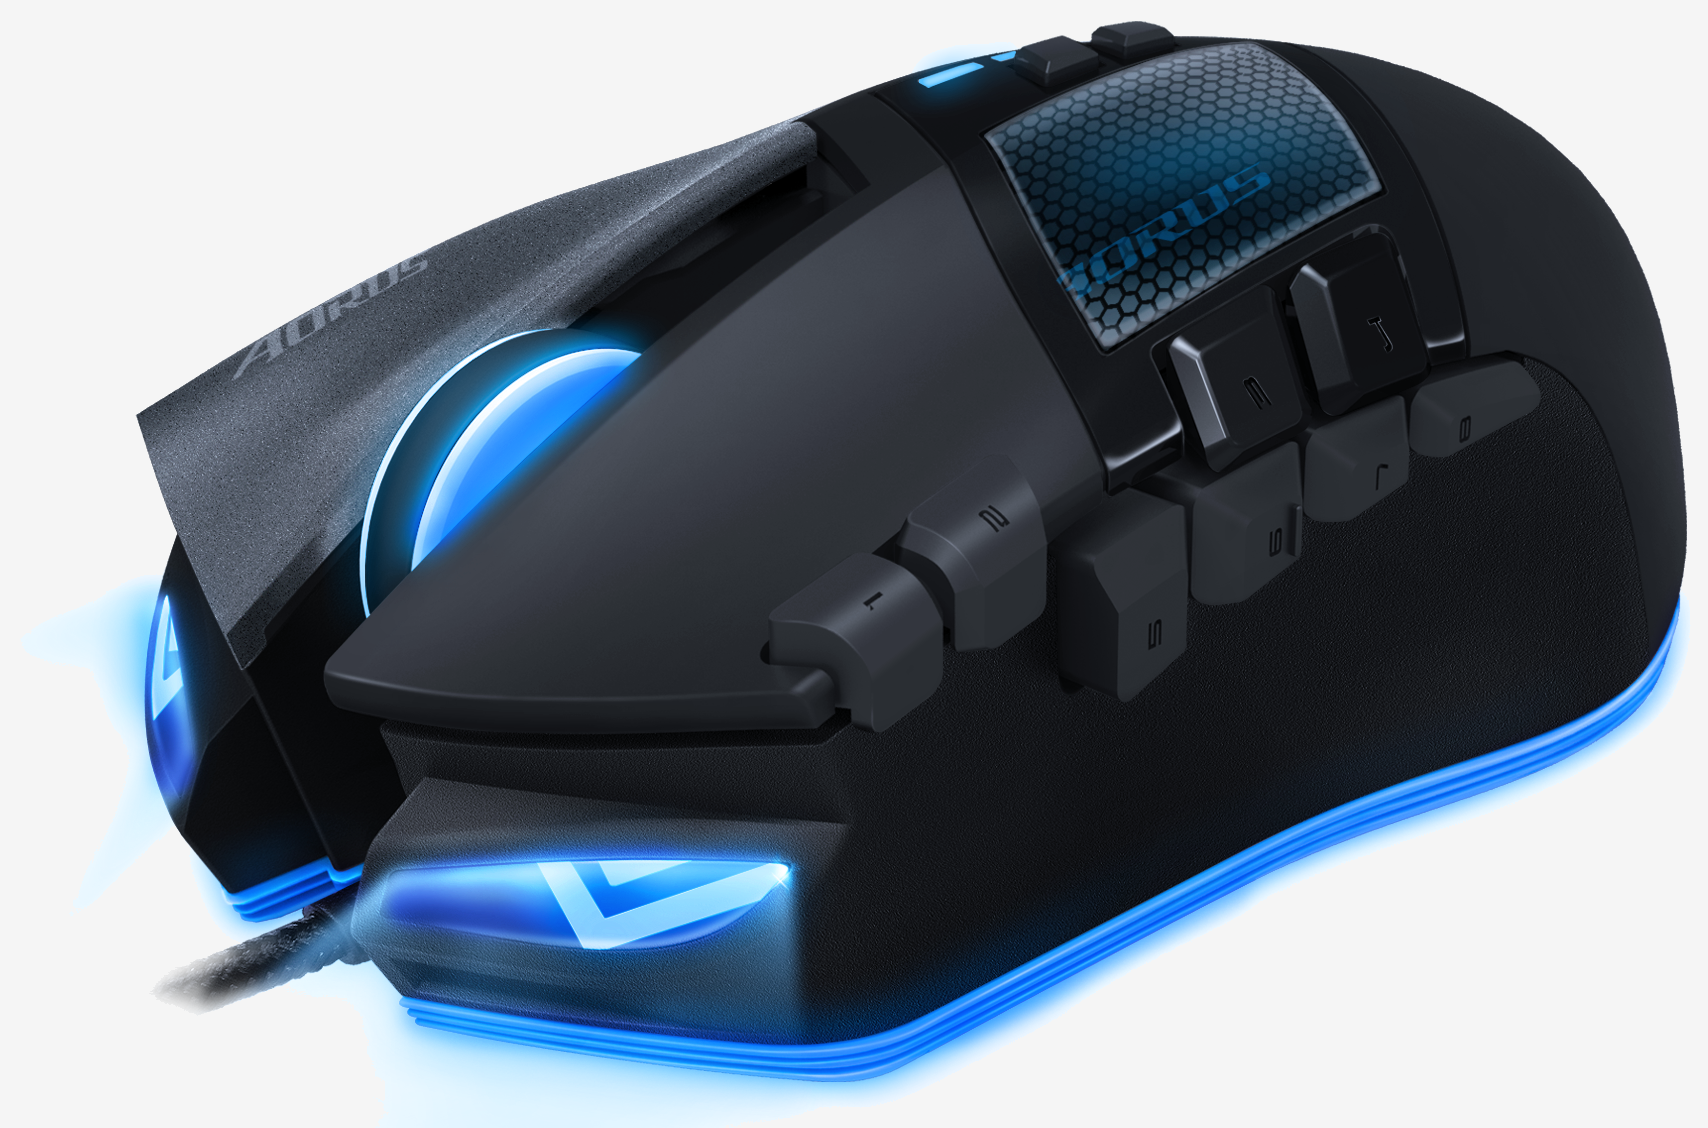 AORUS Gaming Series MMO Mouse -  Black, 16 Programmable Buttons, Adjustable 200-8200 Dpi Laser Sensor, AORUS Macro Engine, 150inch per second Tracking